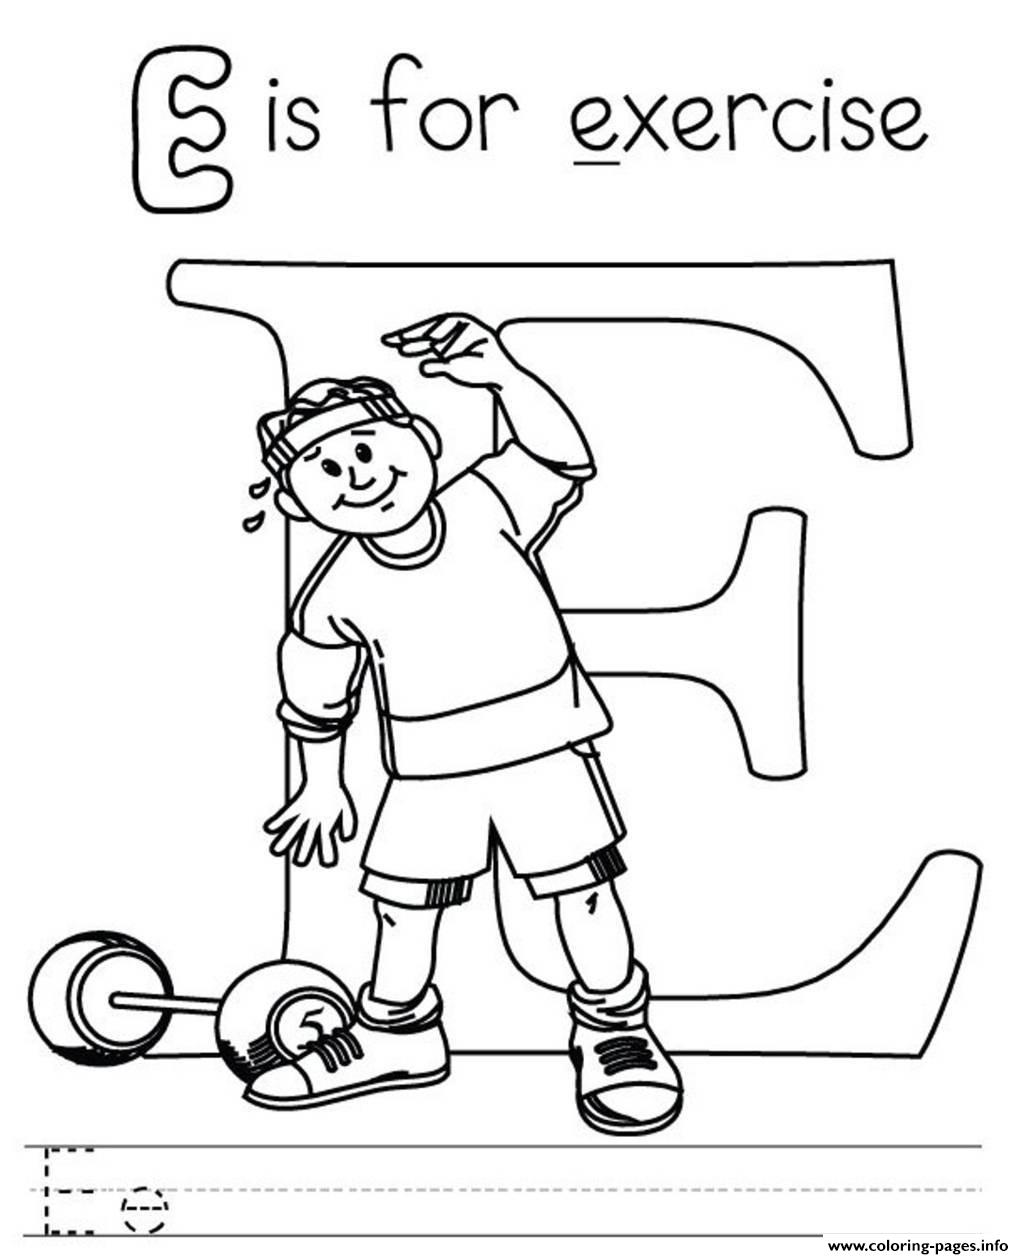 Exercise alphabet s free0136 coloring pages